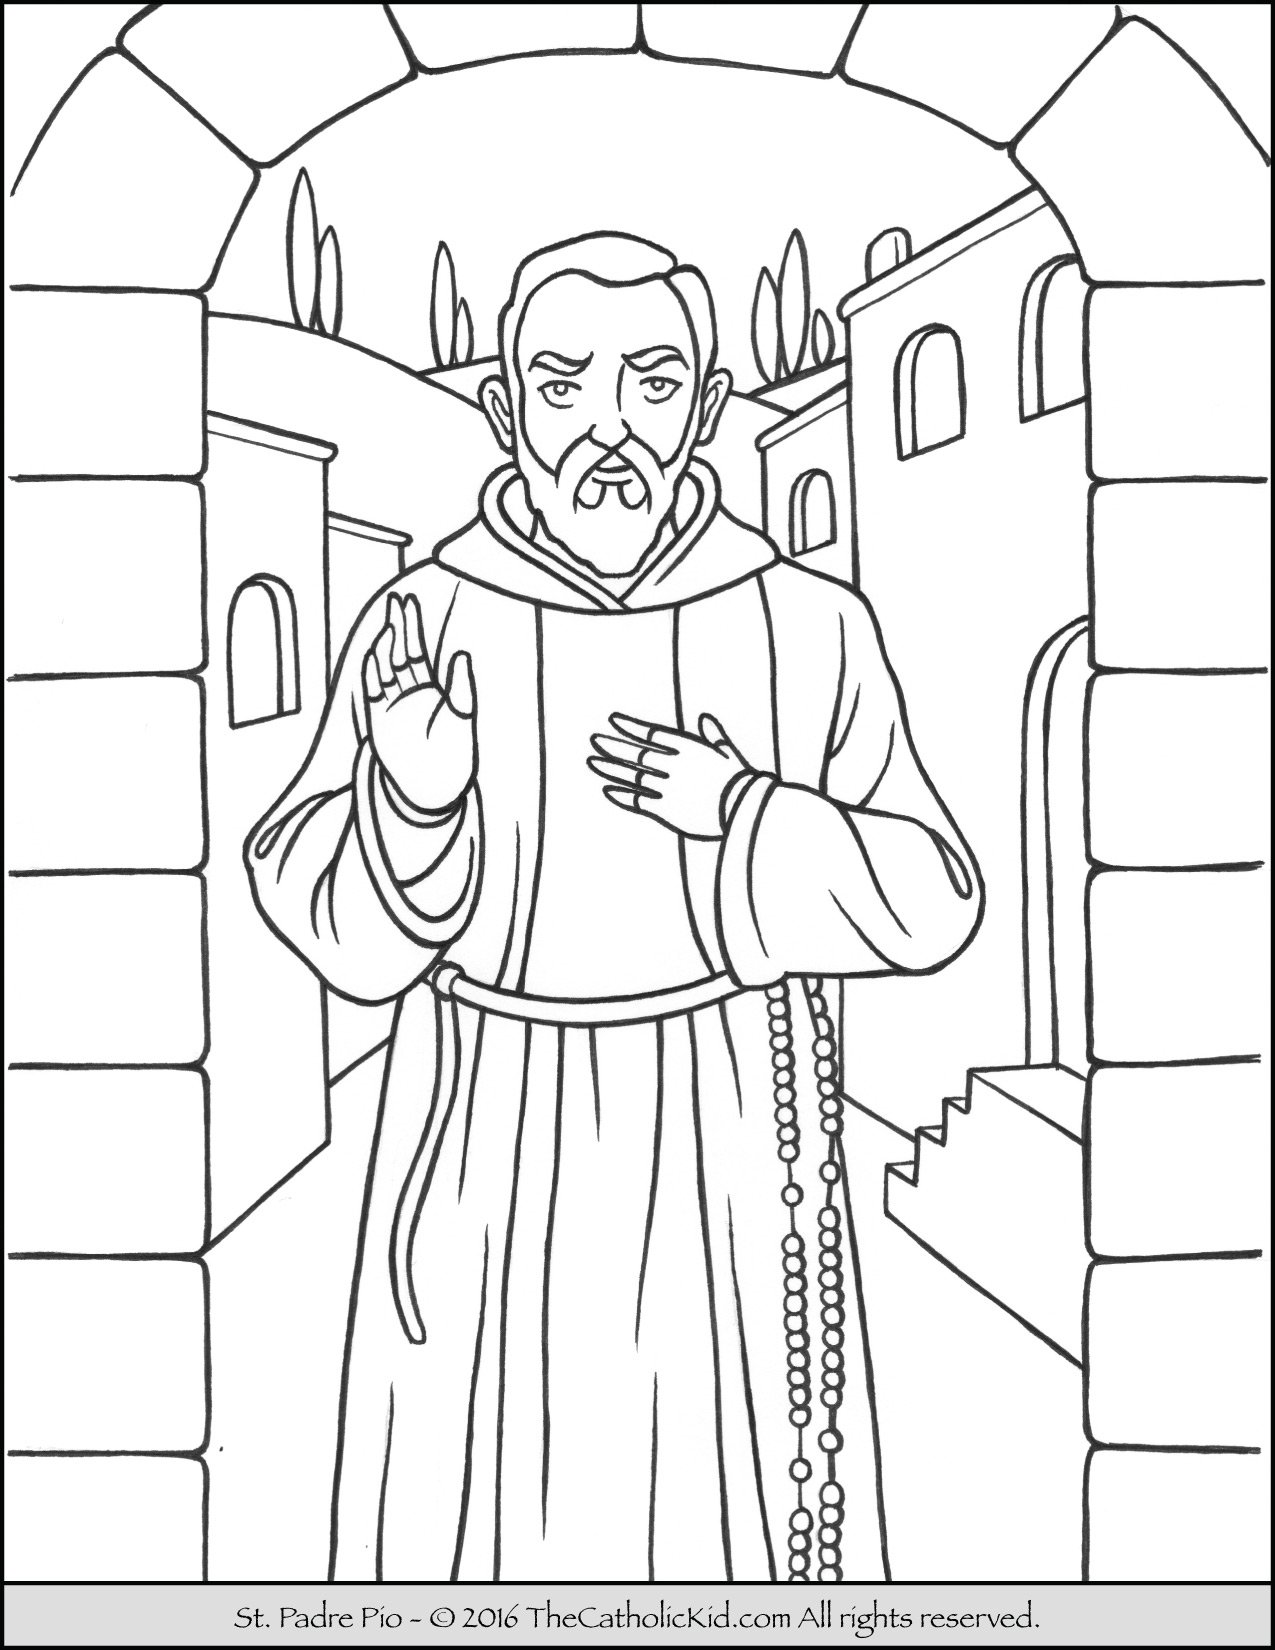 saint padre pio coloring page - Father Coloring Page Catholic